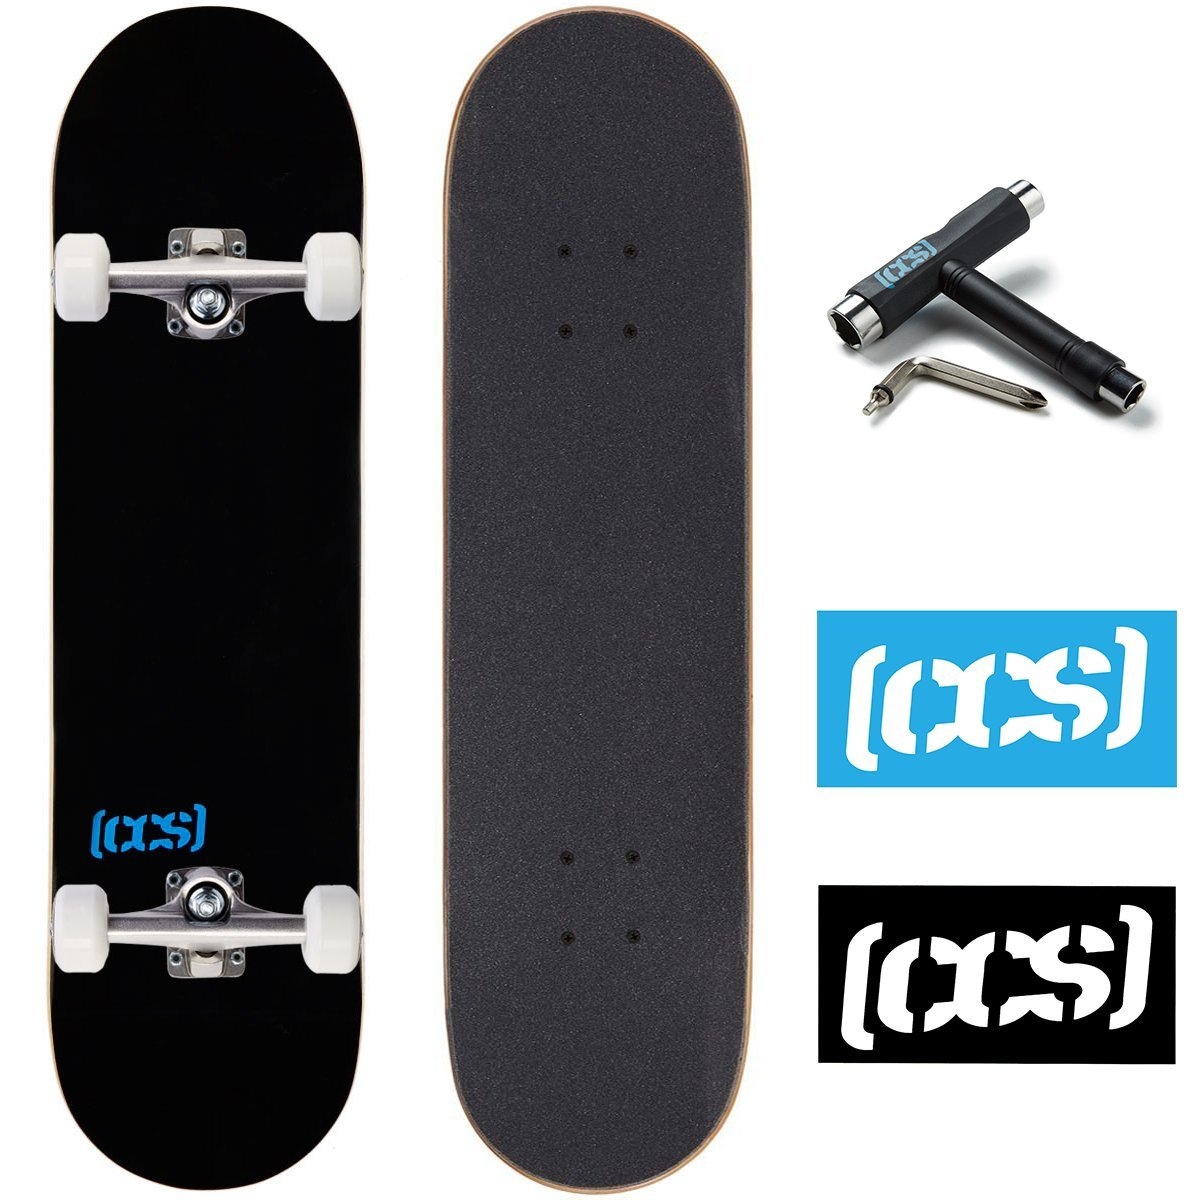 523245a5d Amazon.com   CCS Skateboard Complete - Color Logo and Natural Wood - Fully  Assembled - Includes Skateboard Tool and Stickers   Sports   Outdoors